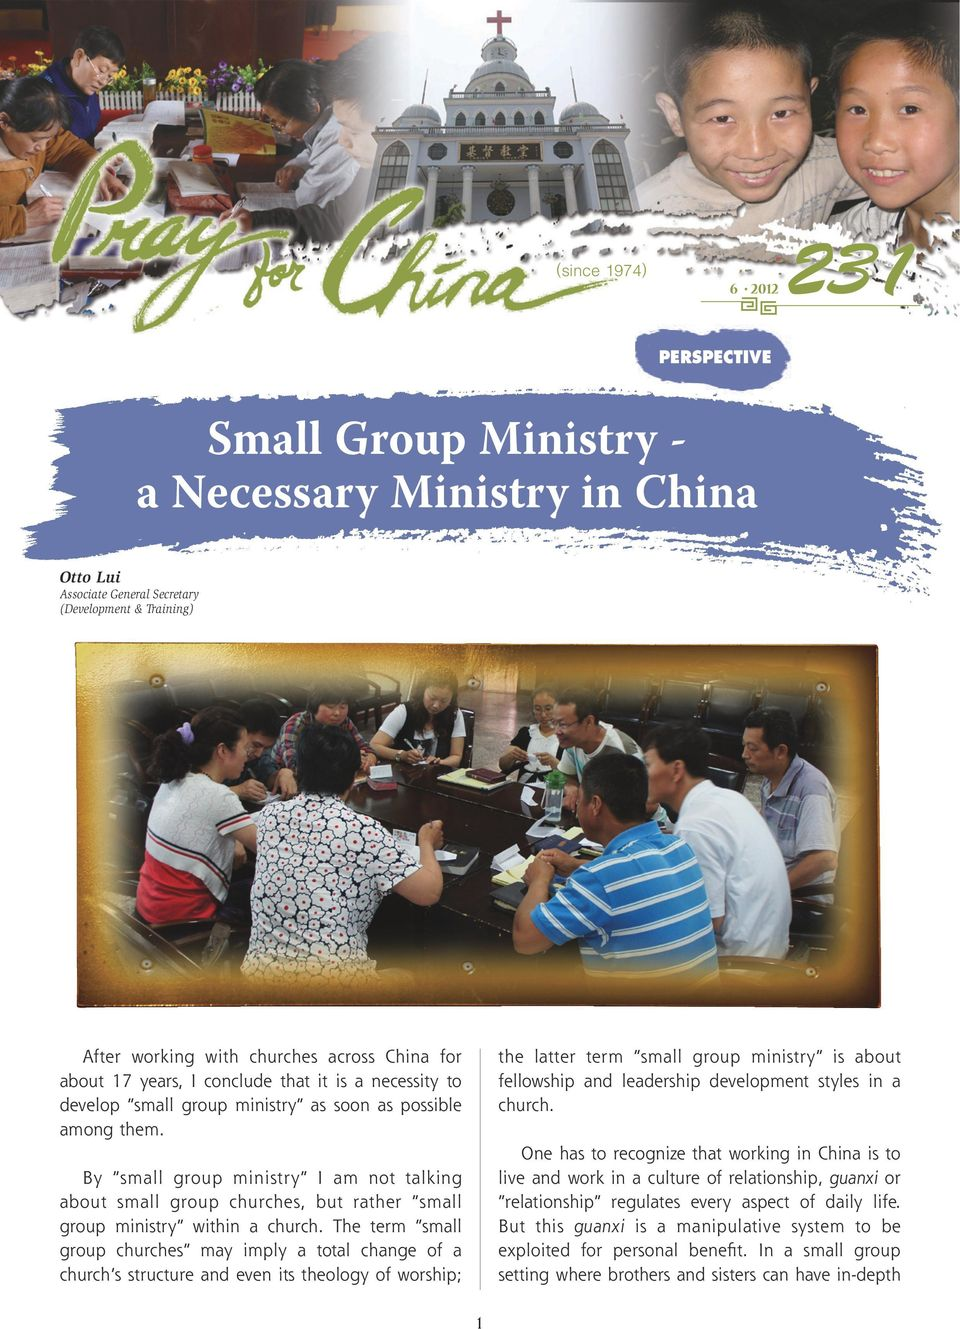 By small group ministry I am not talking about small group churches, but rather small group ministry within a church.